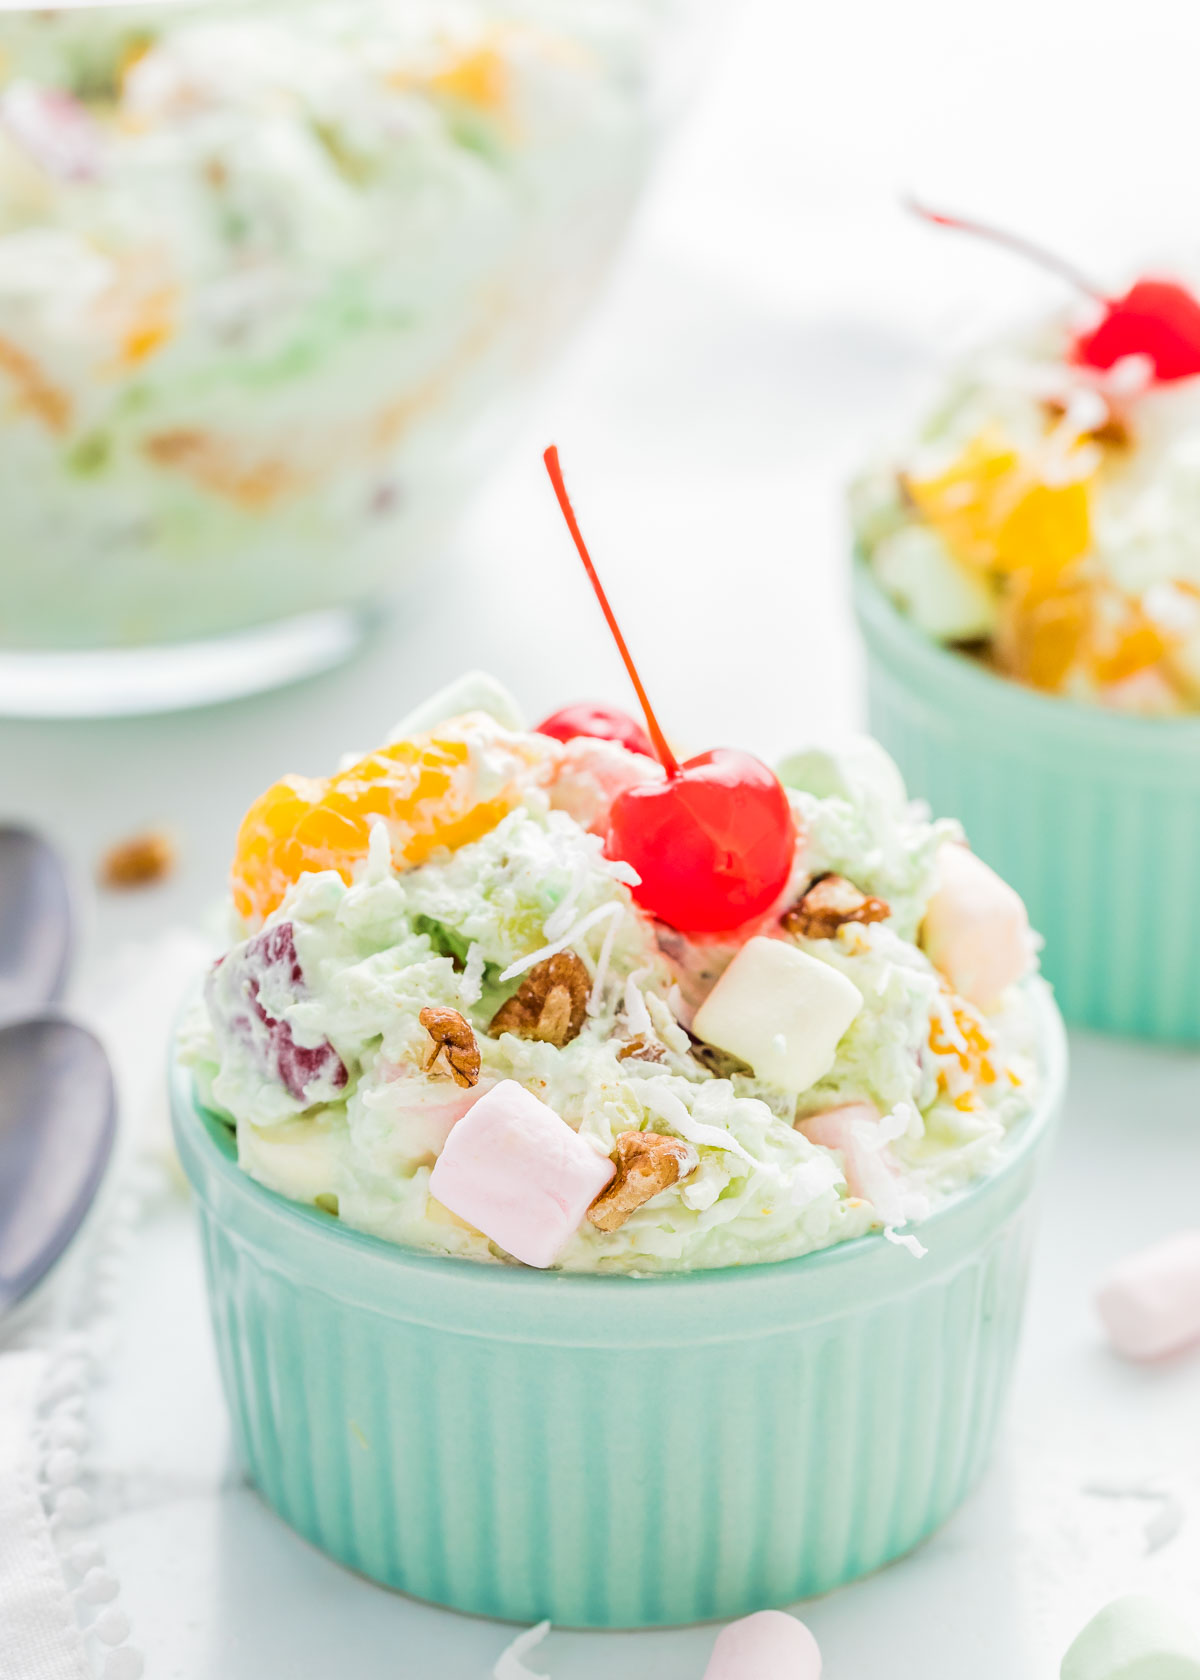 Ambrosia fruit salad in a dish, topped with a cherry